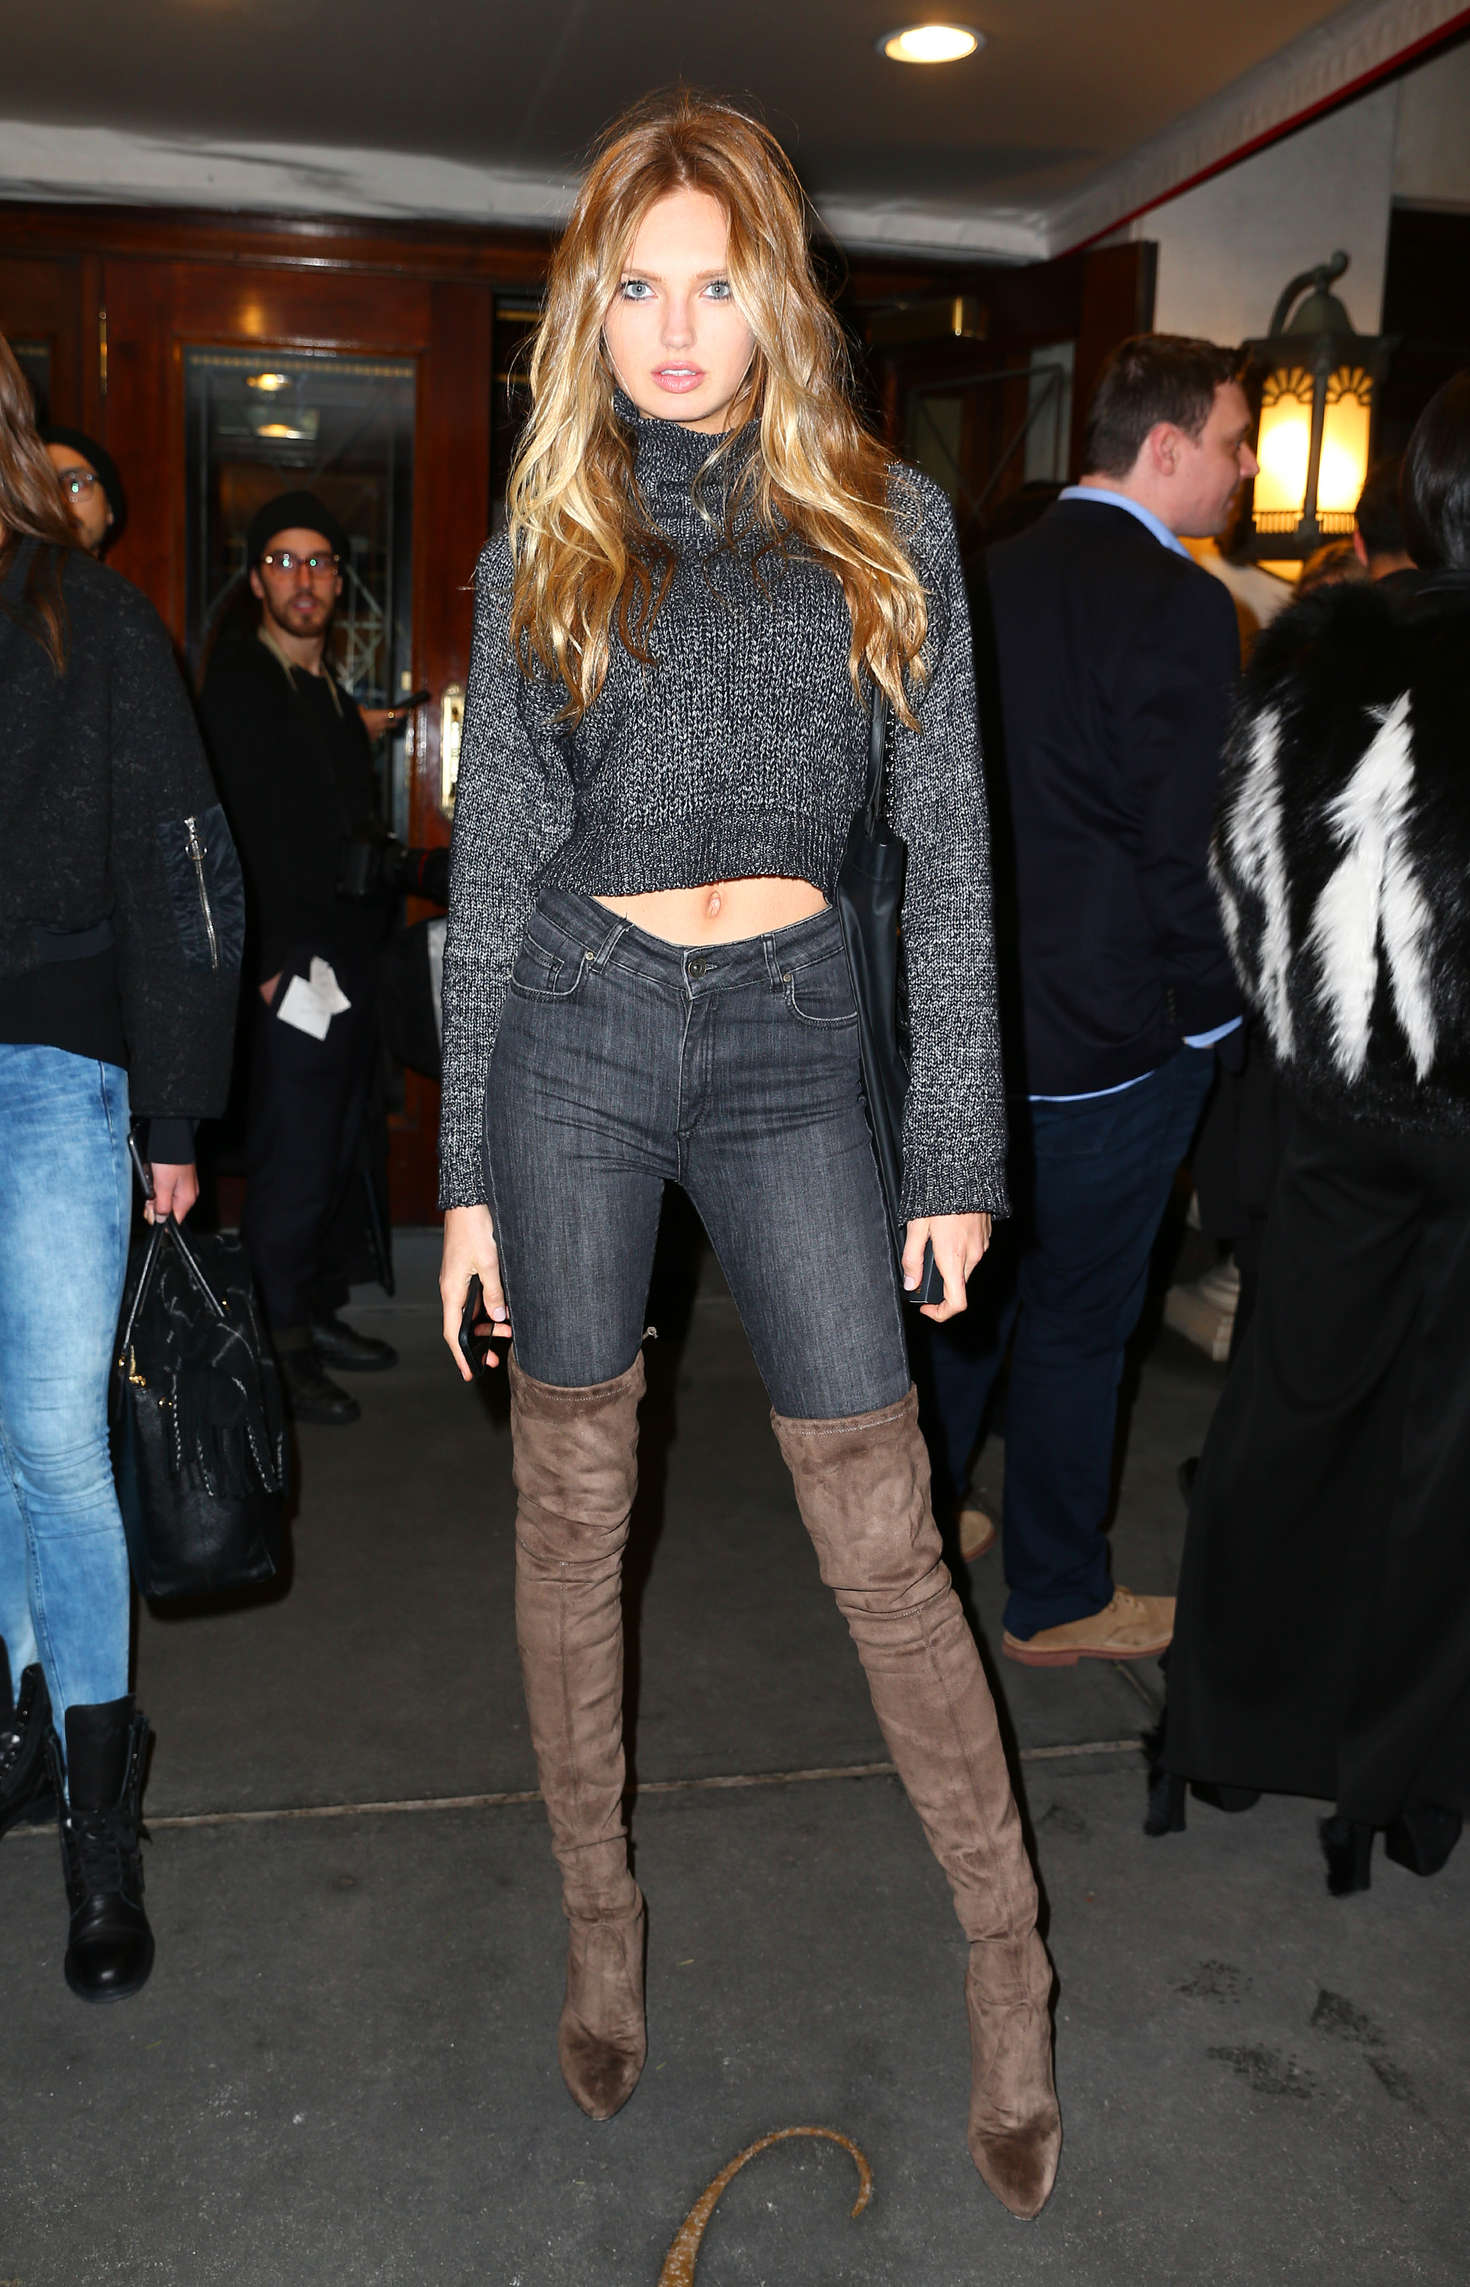 Romee Strijd 2016 : Romee Strijd and Taylor Hill out in NYC -01